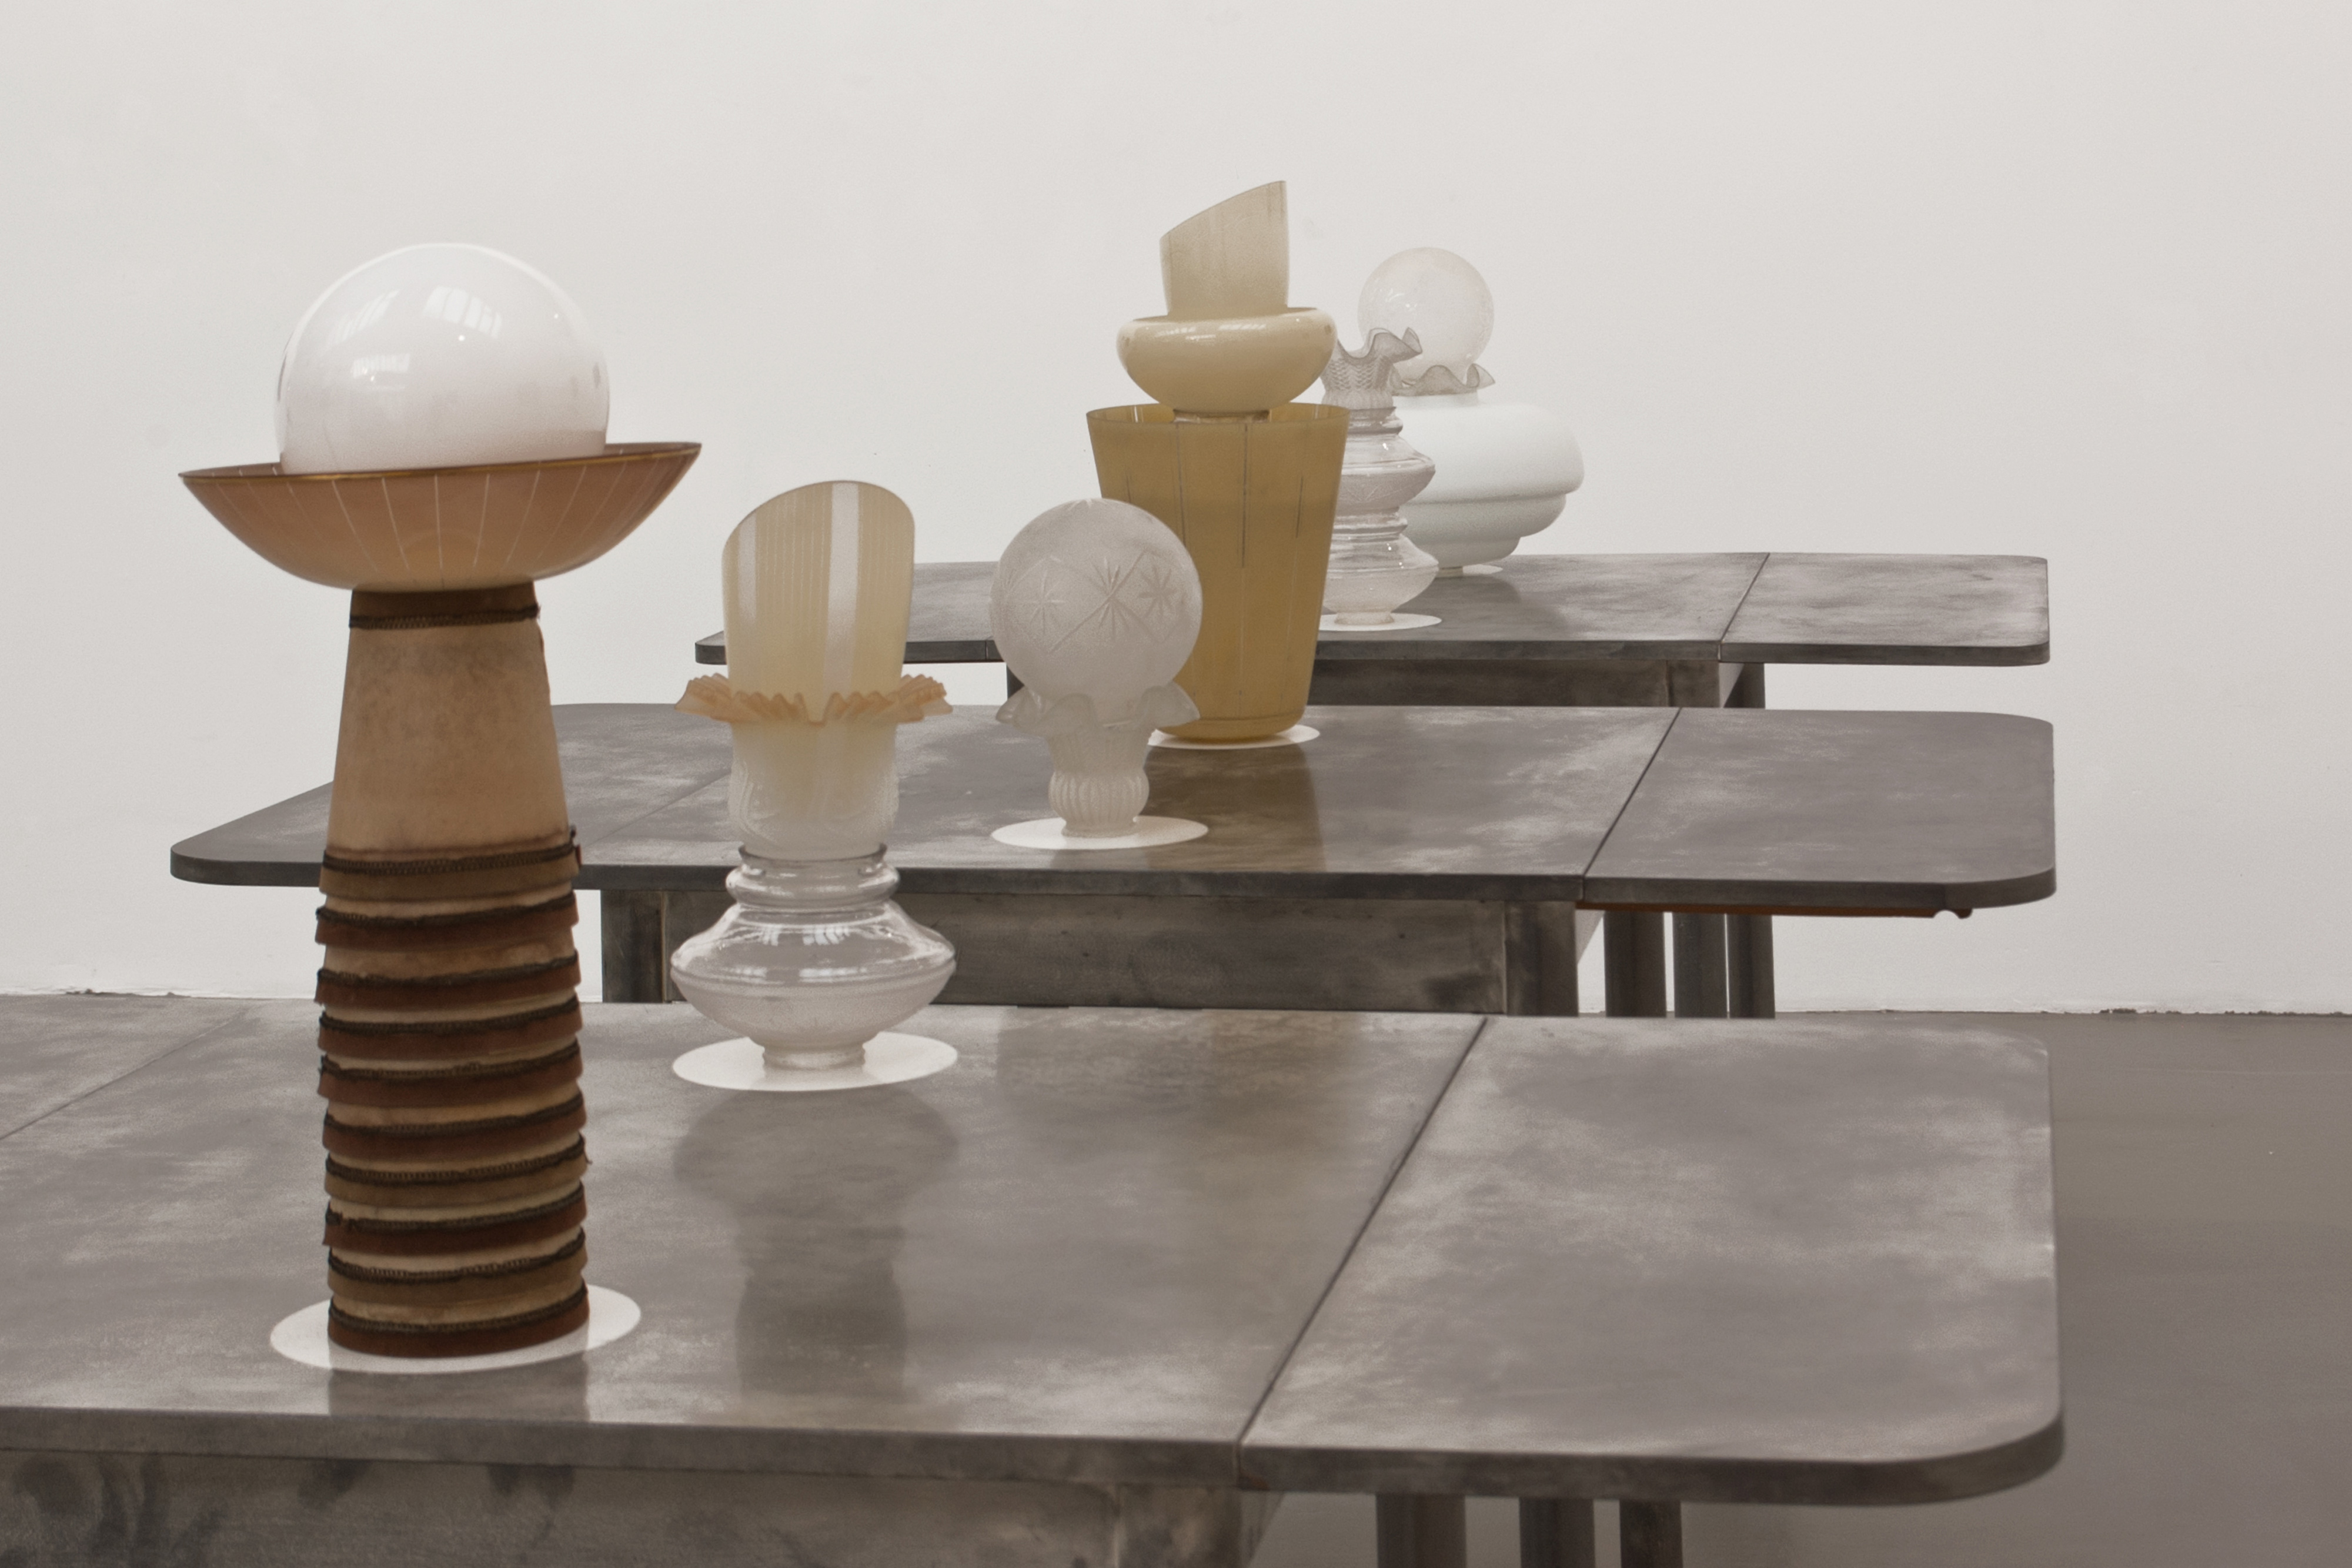 Galerie Barbara Thumm \ Diango Hernández – Dinning At Eight